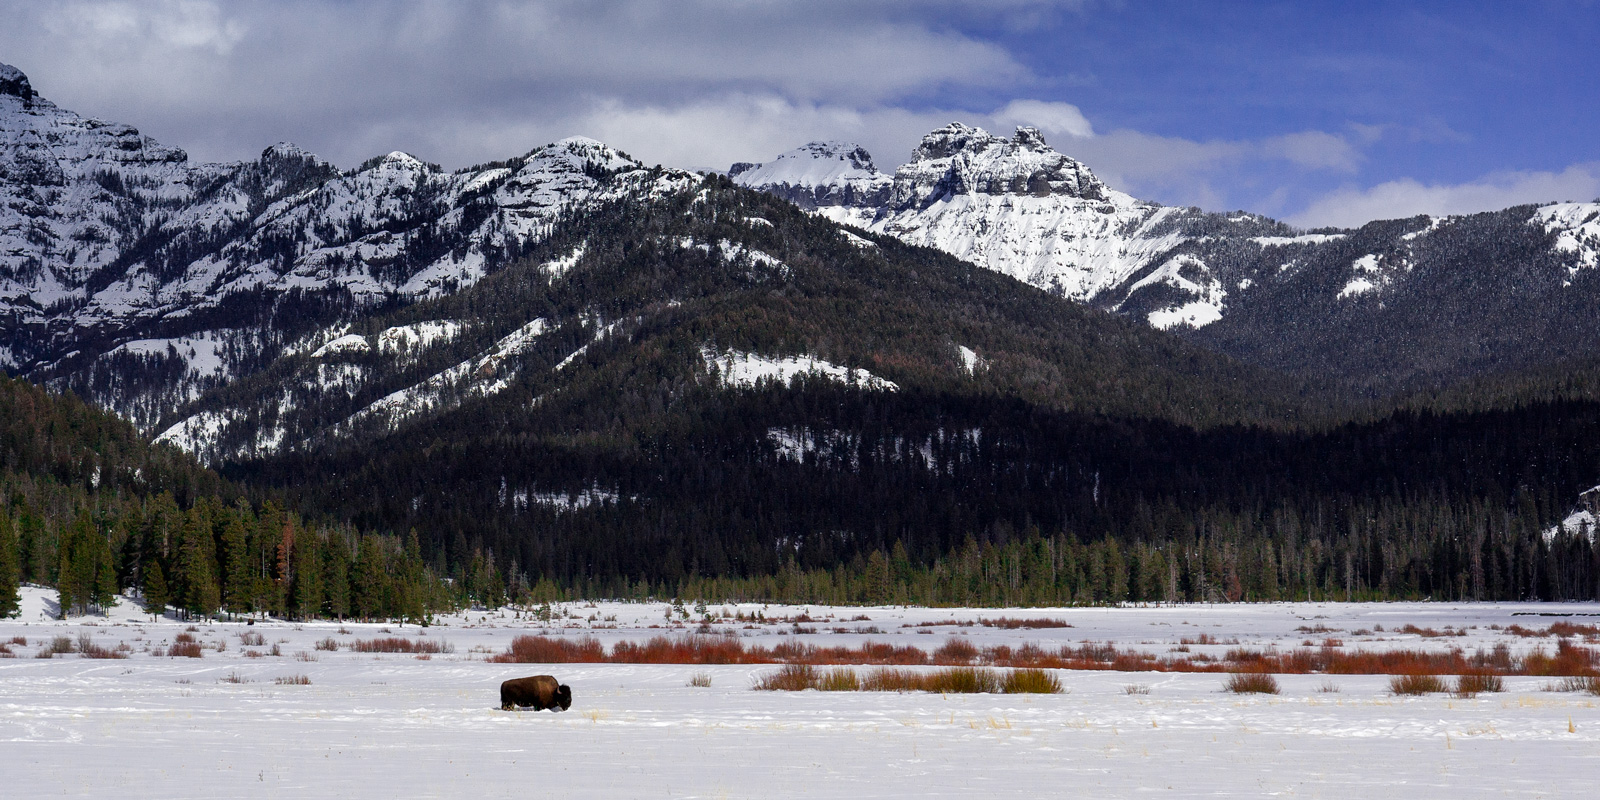 A Limited Edition, Fine Art photograph of a lone bison crossing a deep snow covered field in front of mountains at Yellowstone...